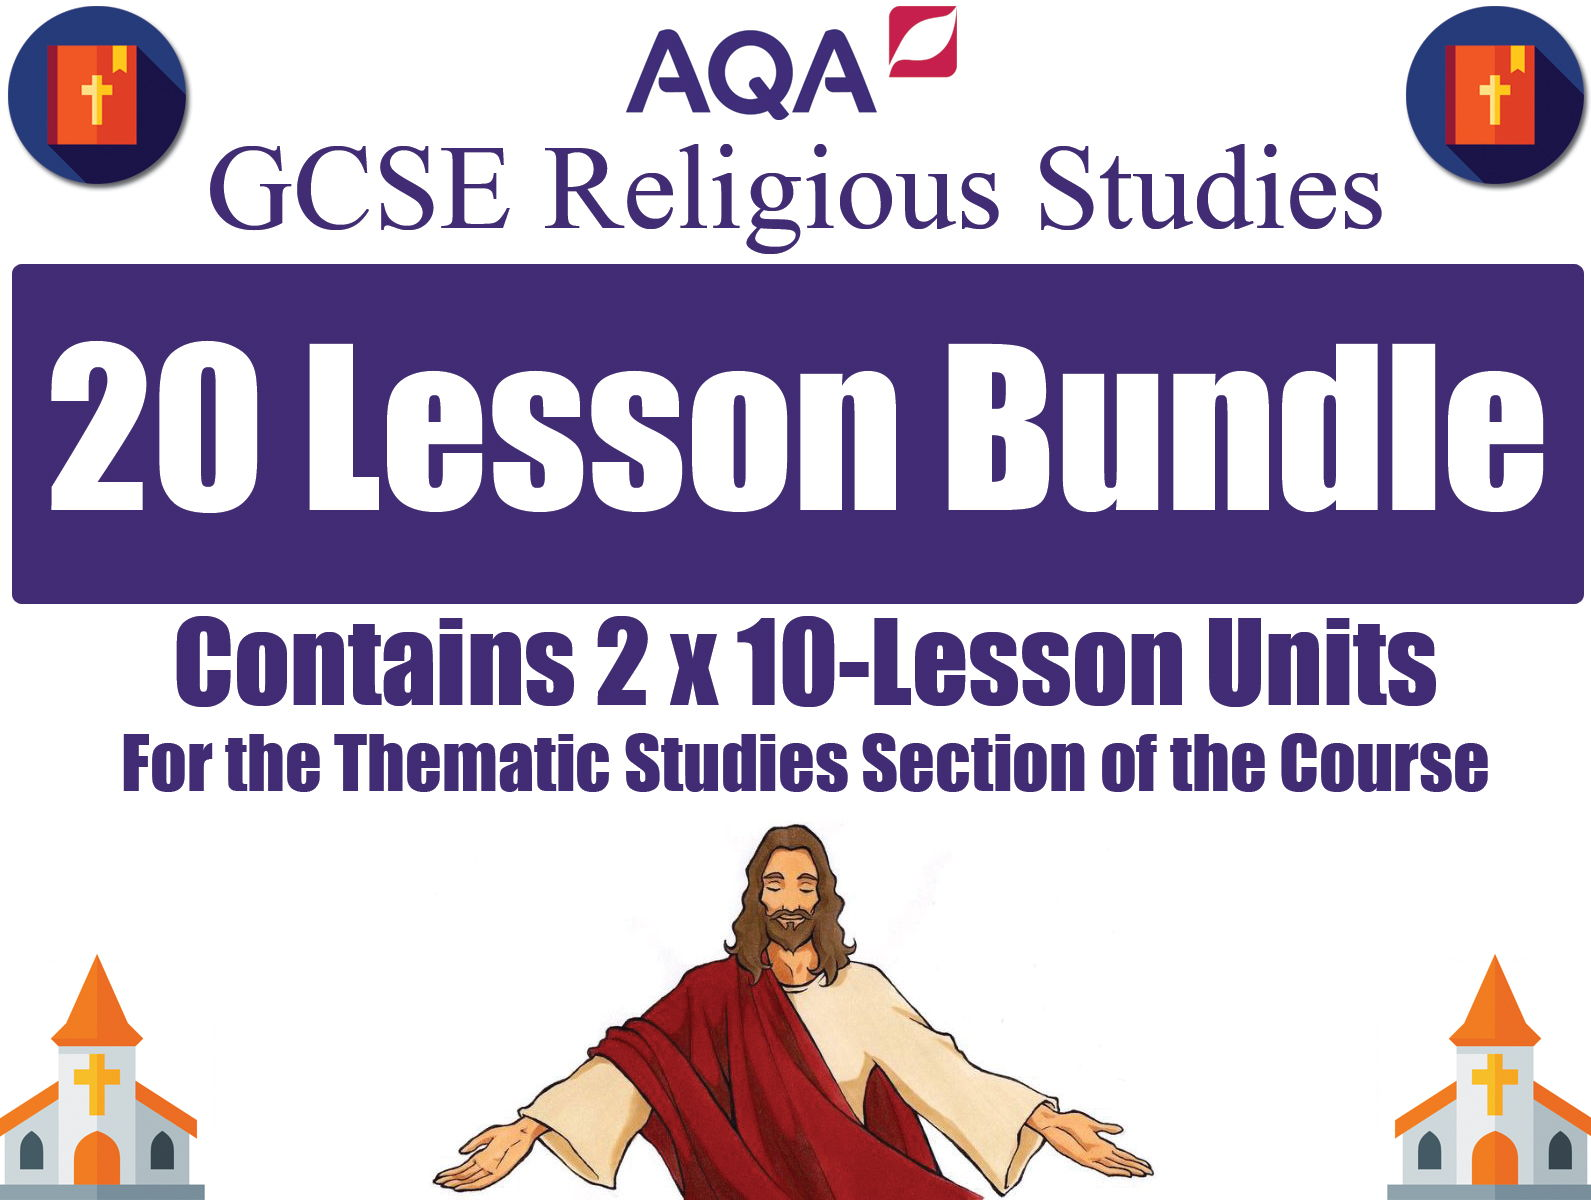 'Relationships & Families' + 'Religion, Peace & Conflict' (20 Lessons) [GCSE RS - AQA]